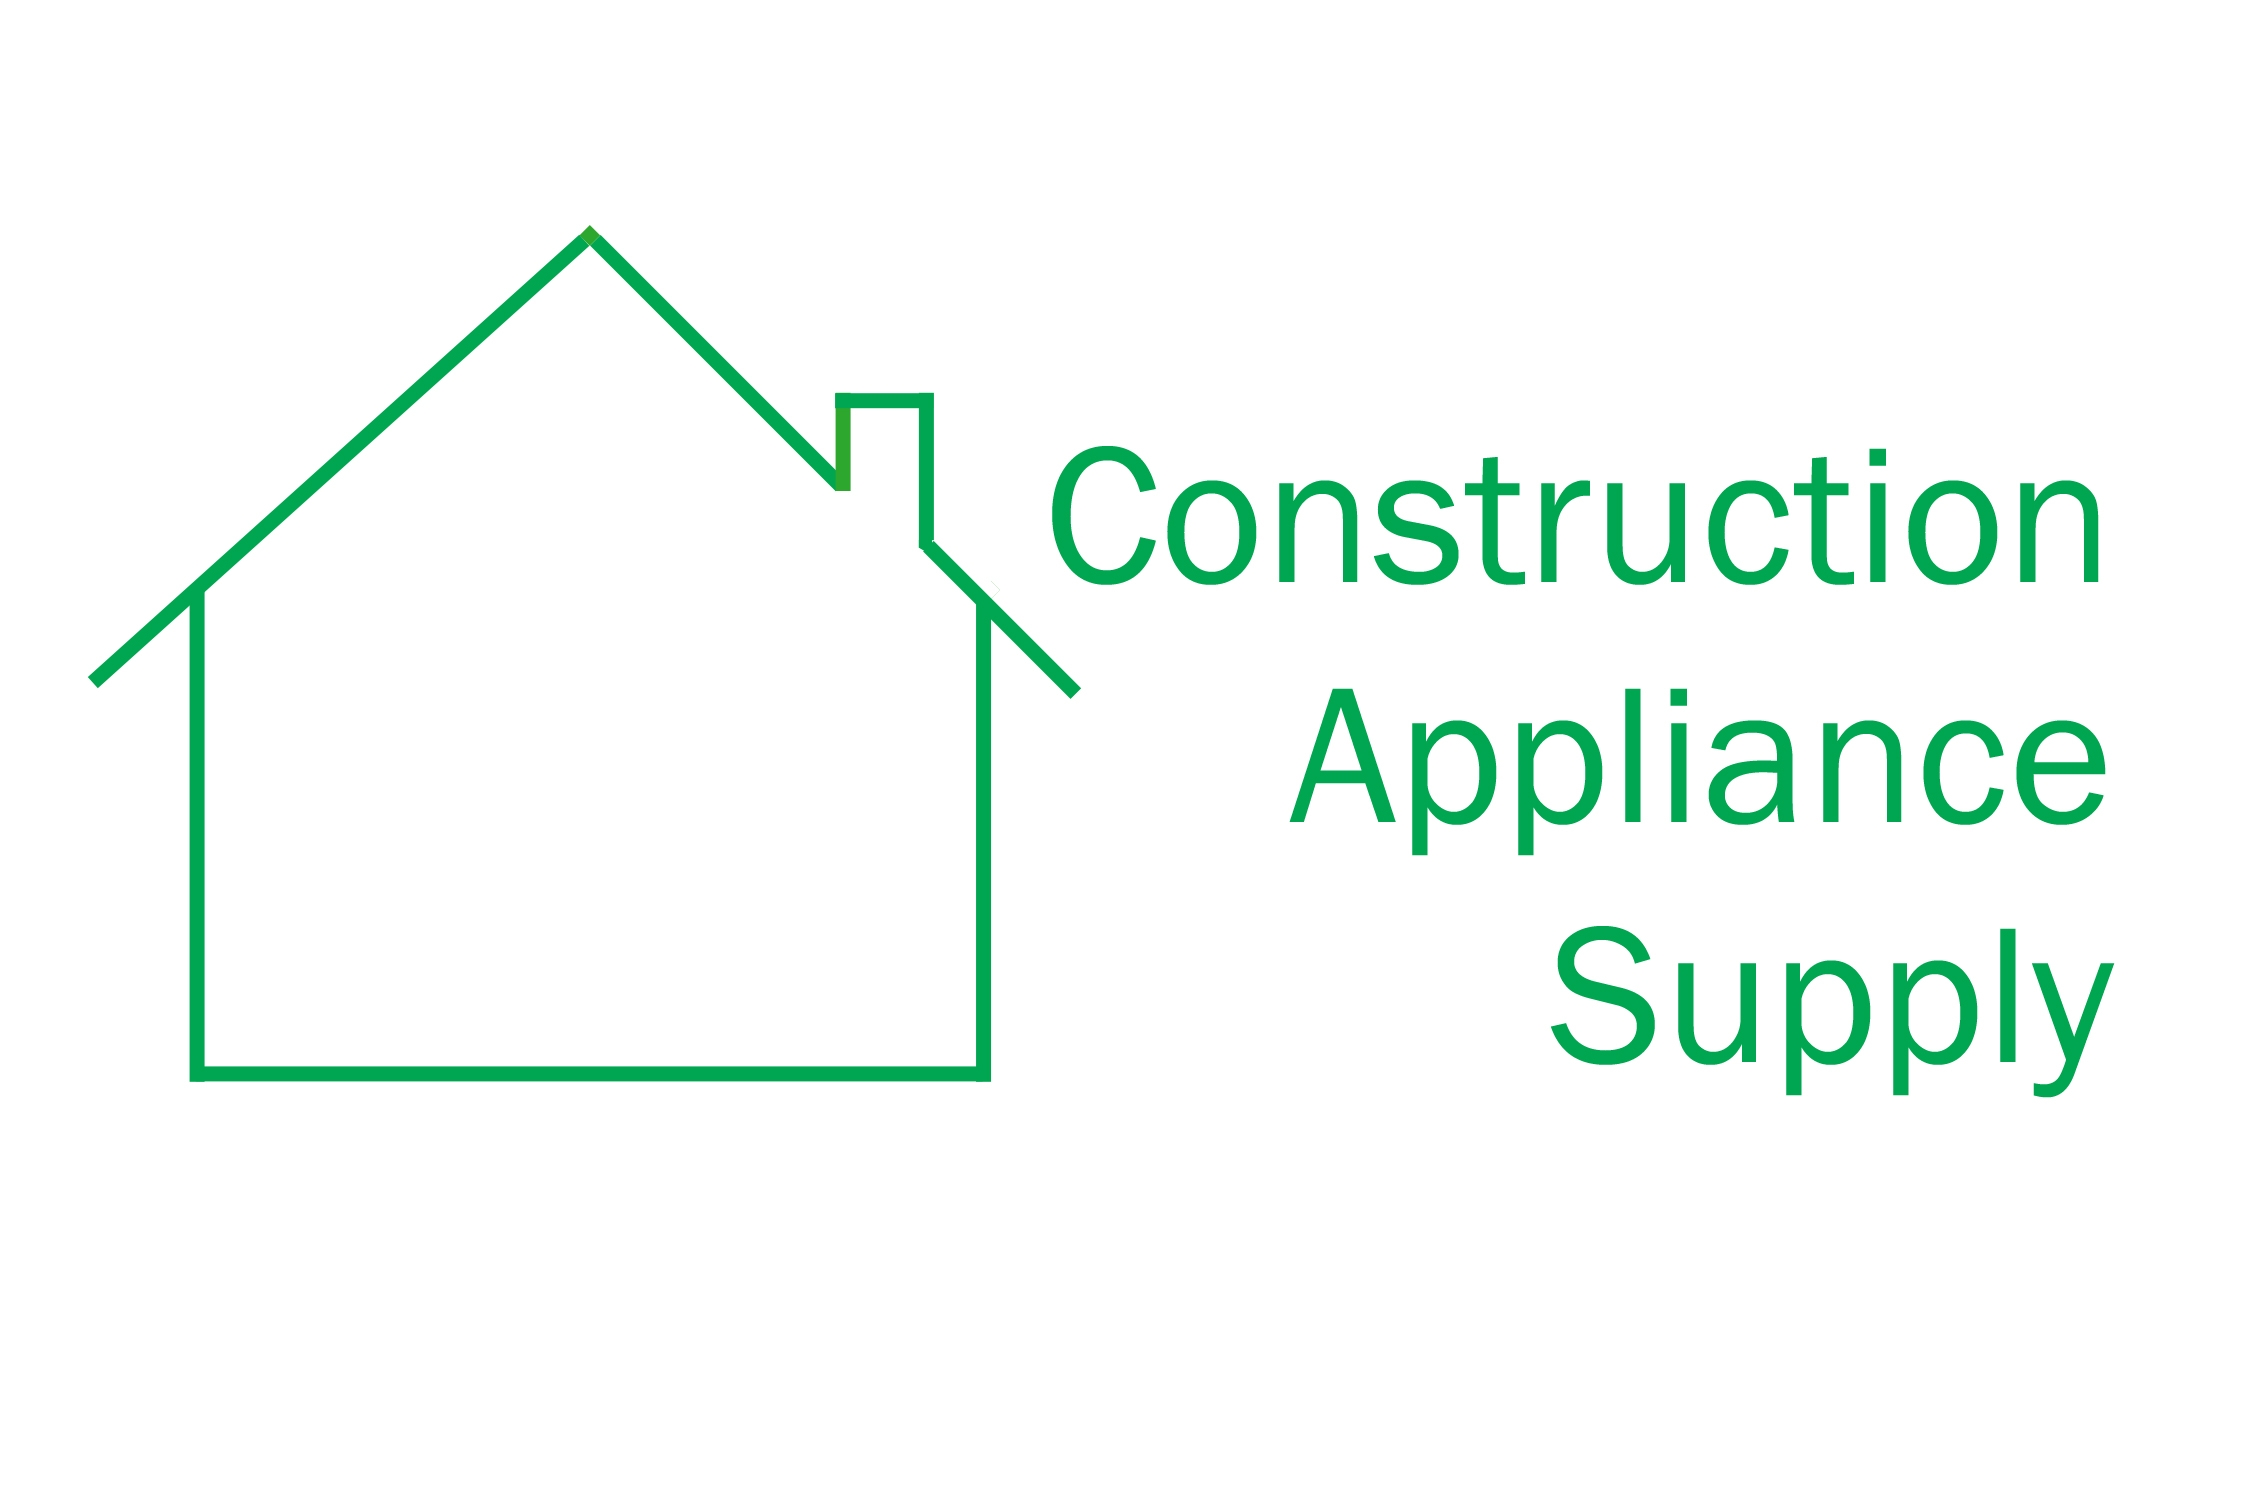 Construction Appliance Supply Logo